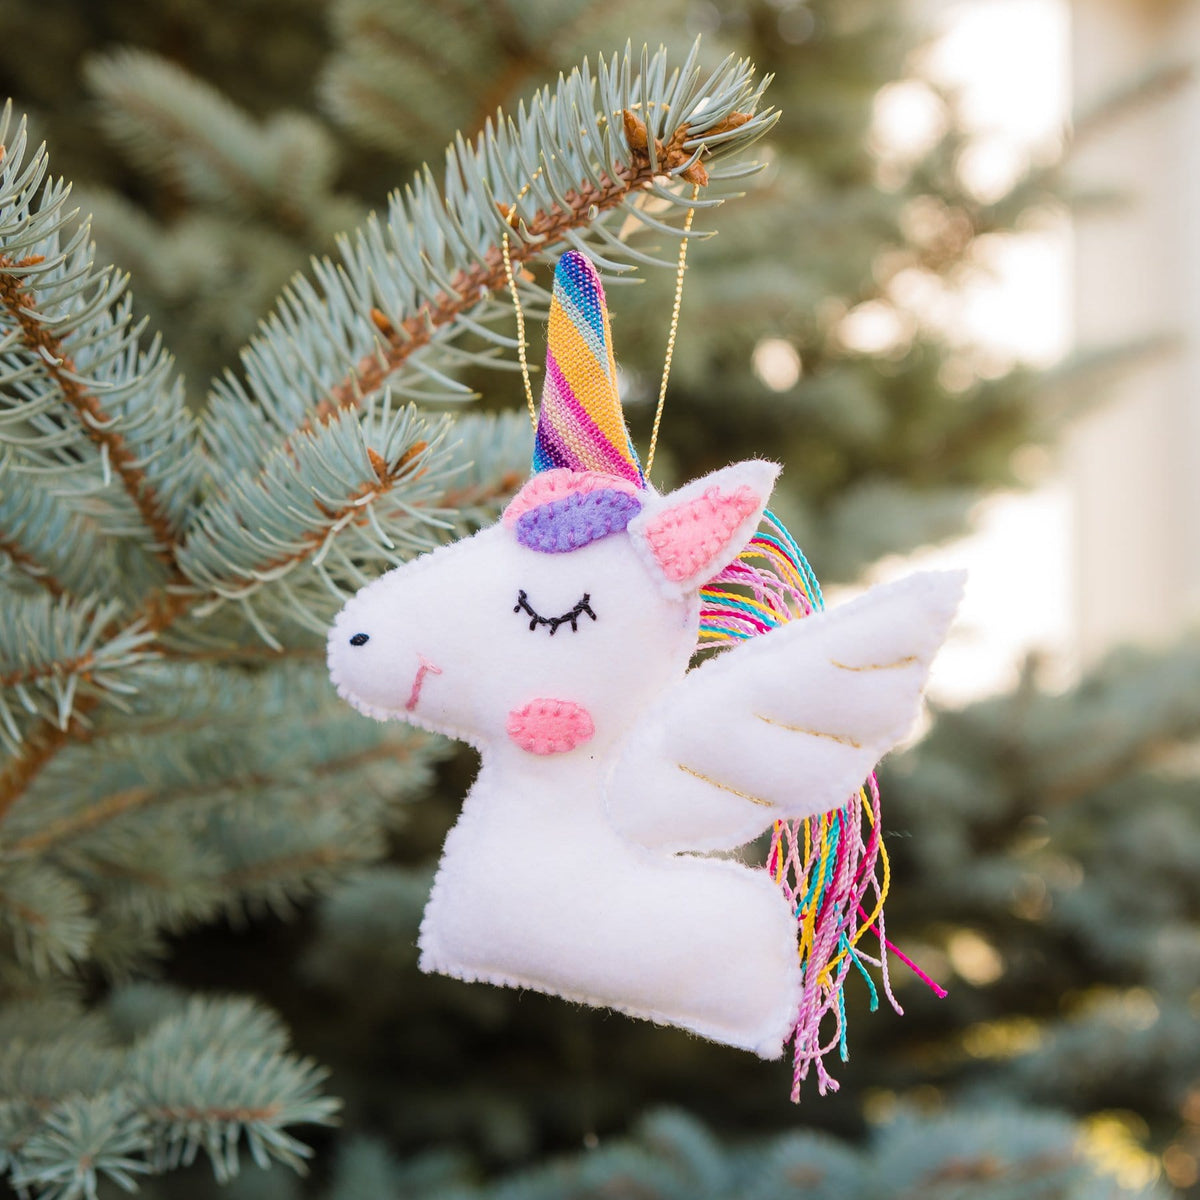 Handmade Felt Unicorn Ornament White Hanging on Tree